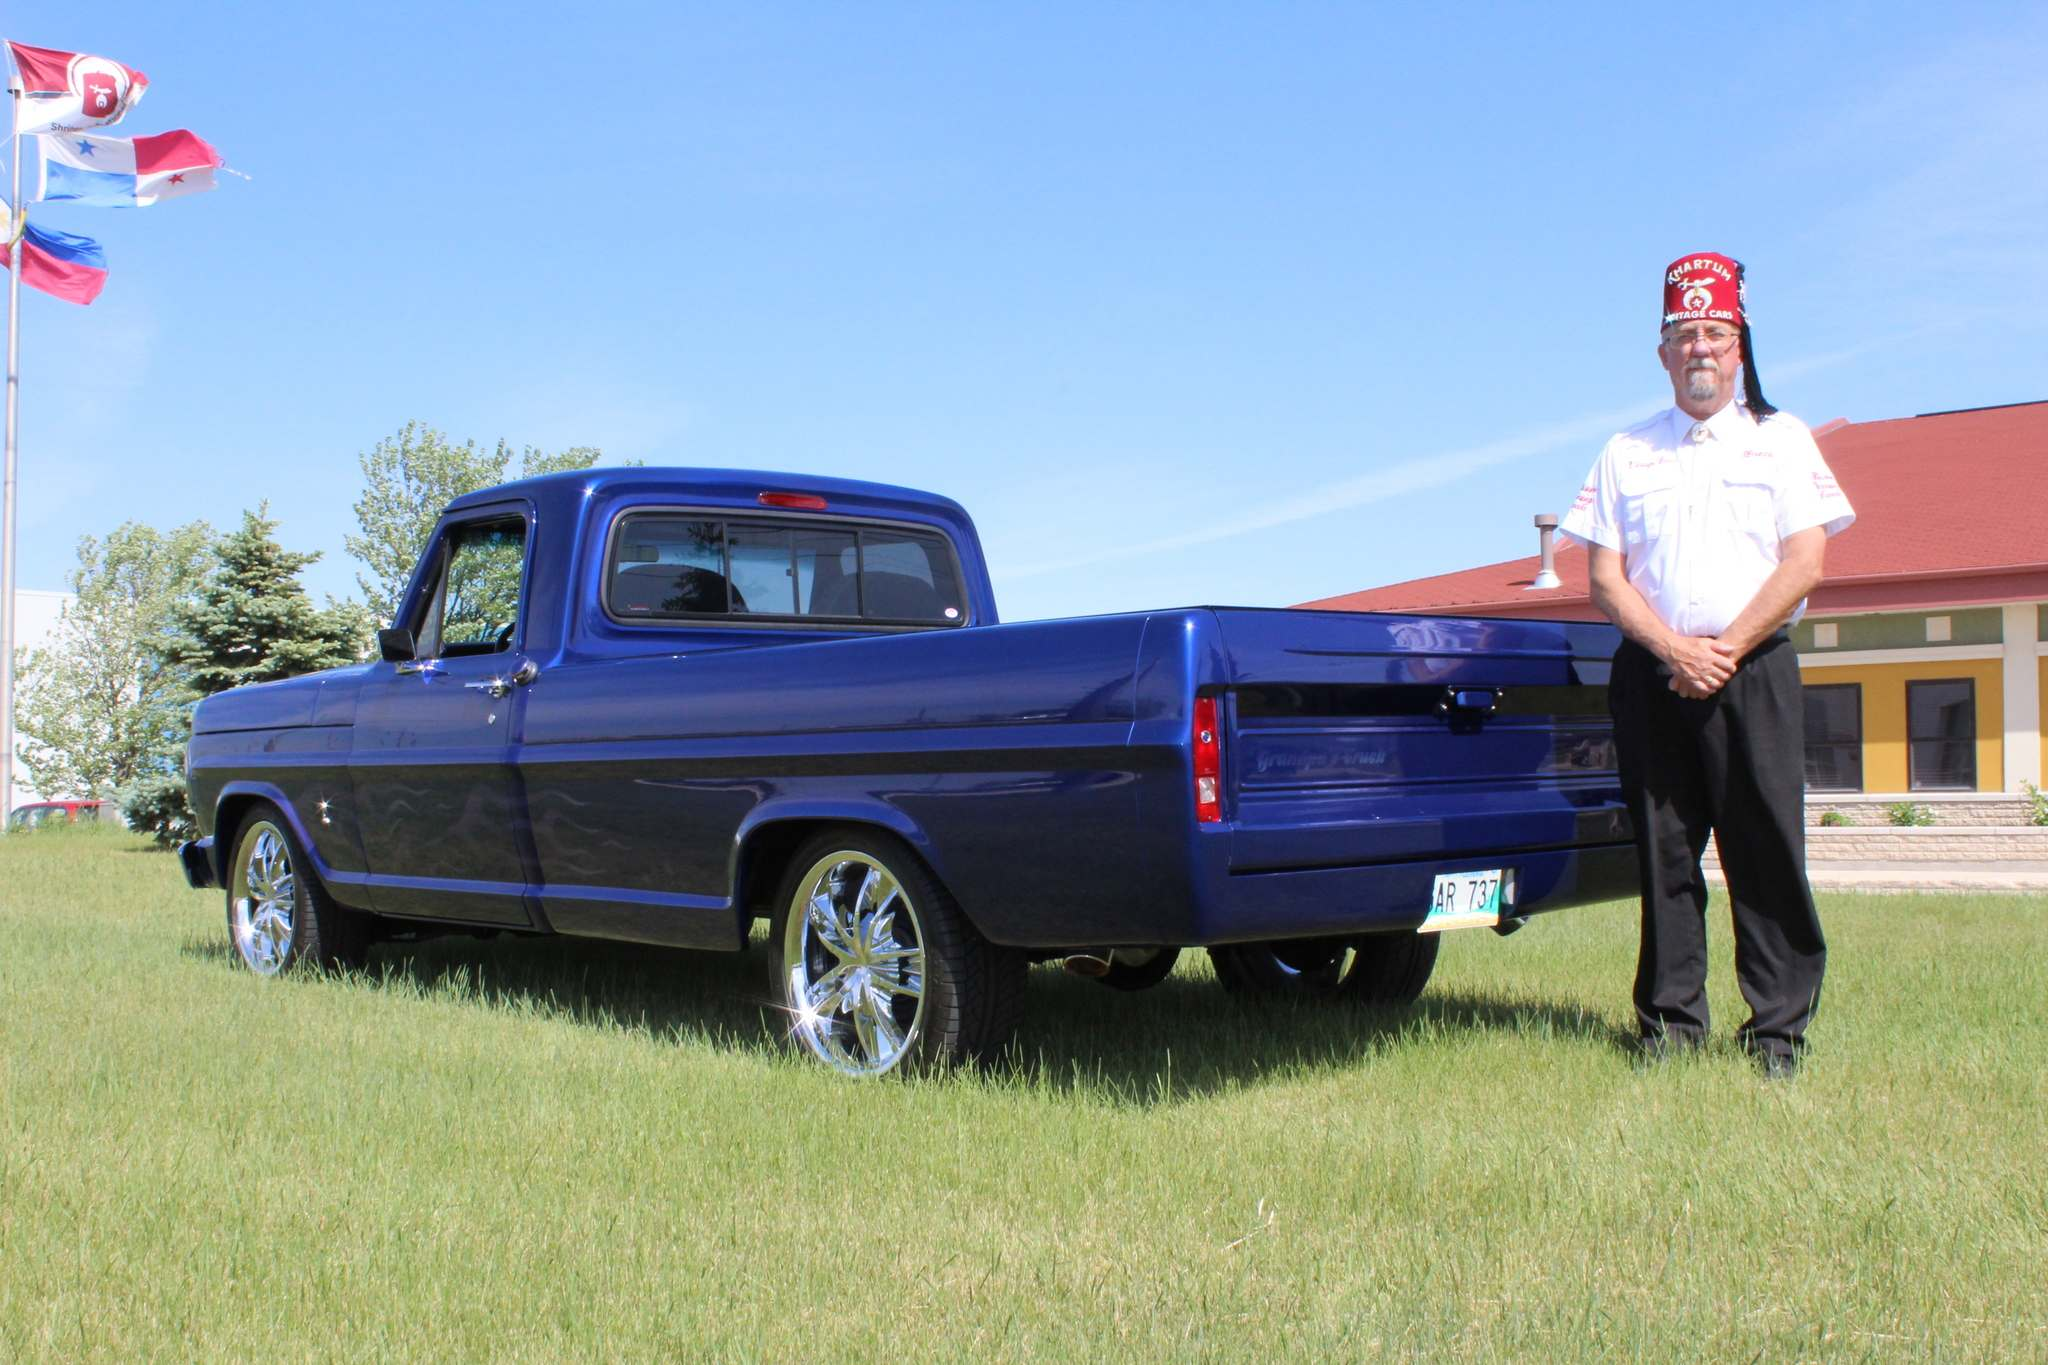 PHOTOS BY Larry D'Argis / winnipeg free press Khartum Shriners noble Brent Gillespie shows off the restored 1967 Ford F100 valued at $32,000 that is the prize for the group's annual charity raffle.